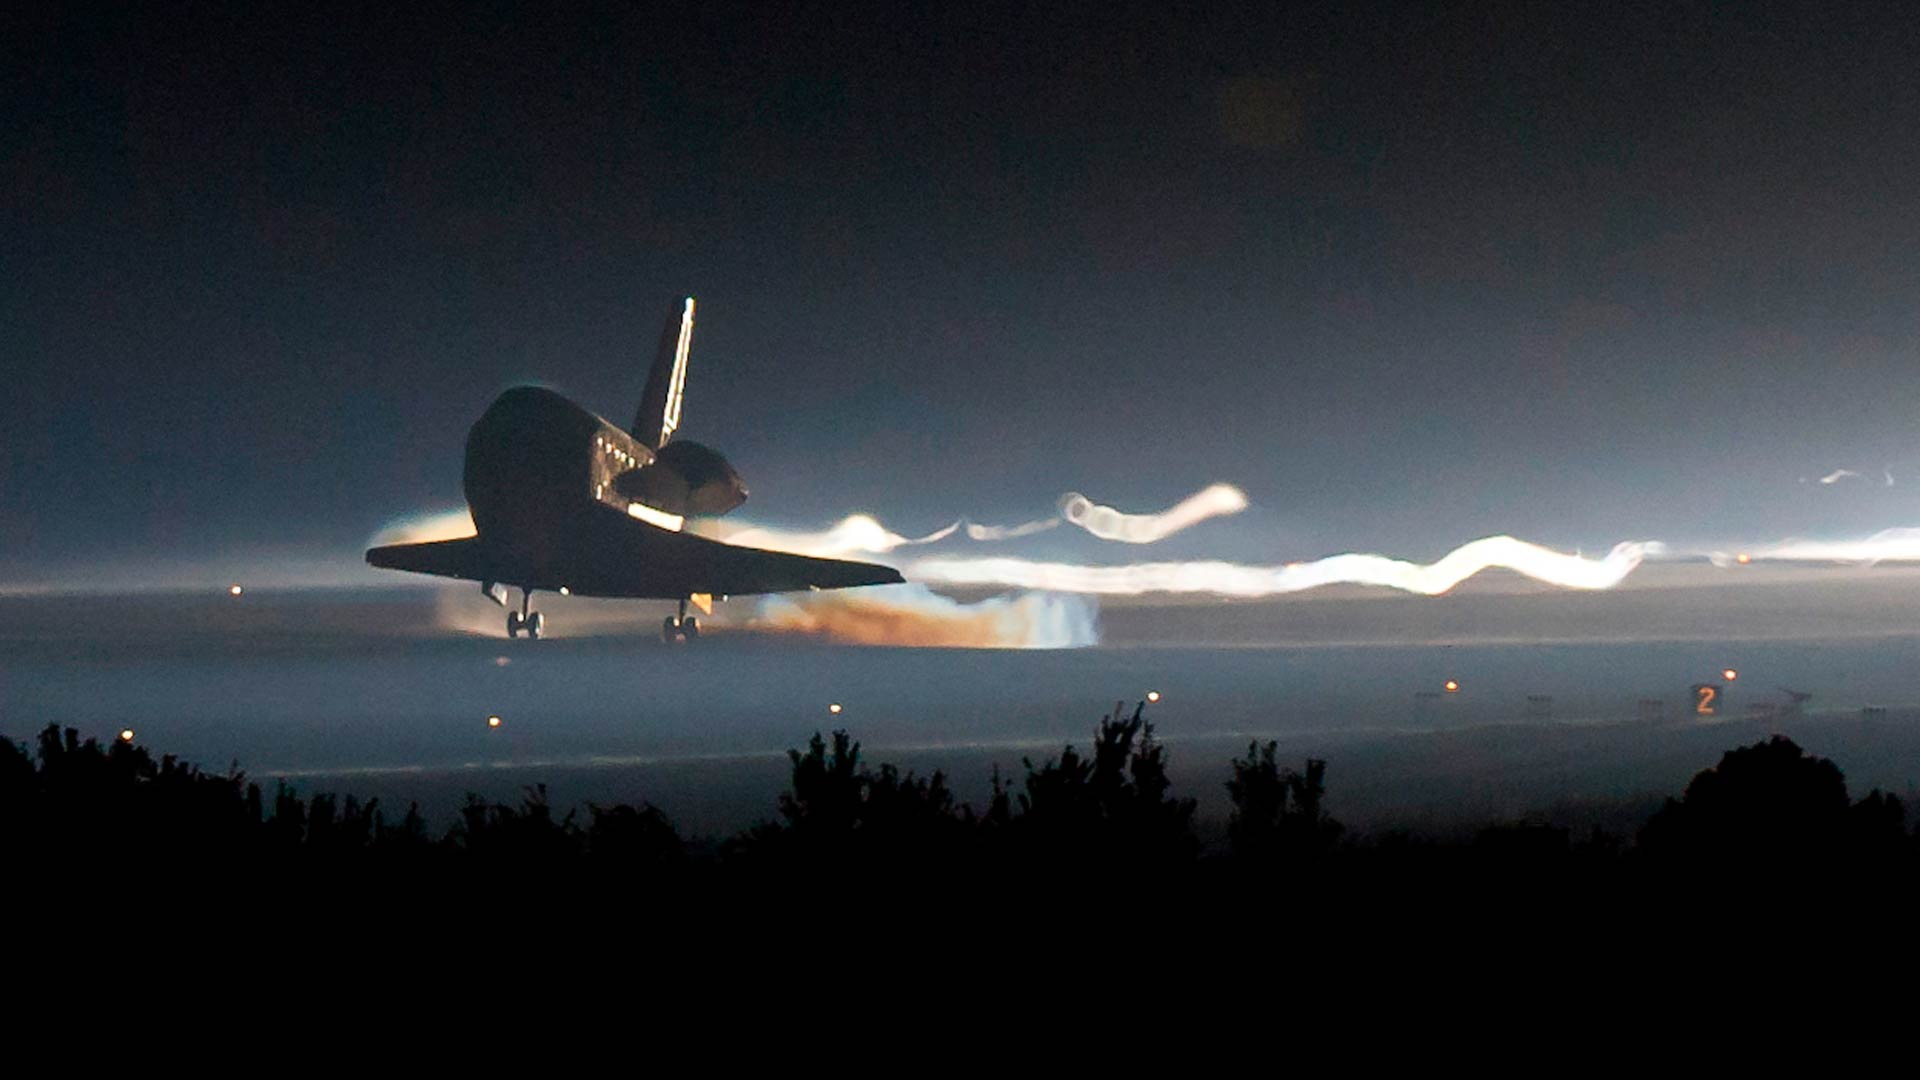 Definitive Goodbye Space Shuttle Desktop Wallpaper Gizmodo Australia 1920x1080